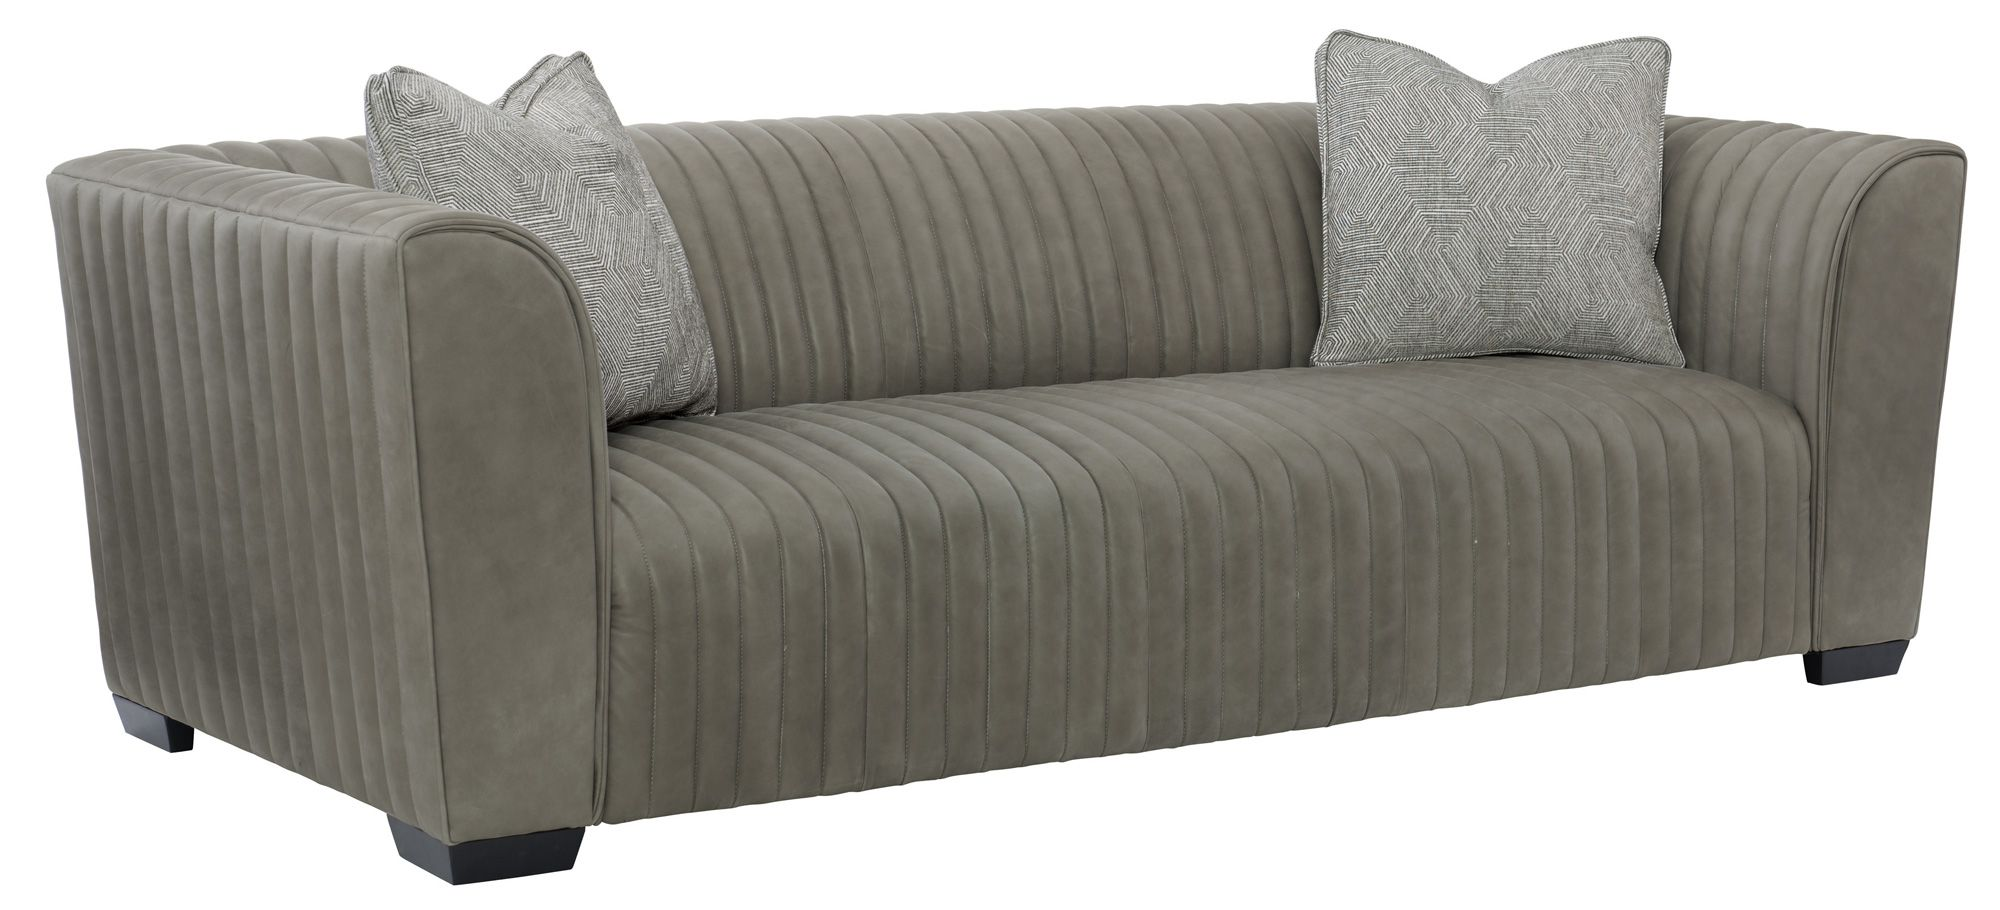 Sofa | Bernhardt | Sofa, Contemporary furniture stores ...